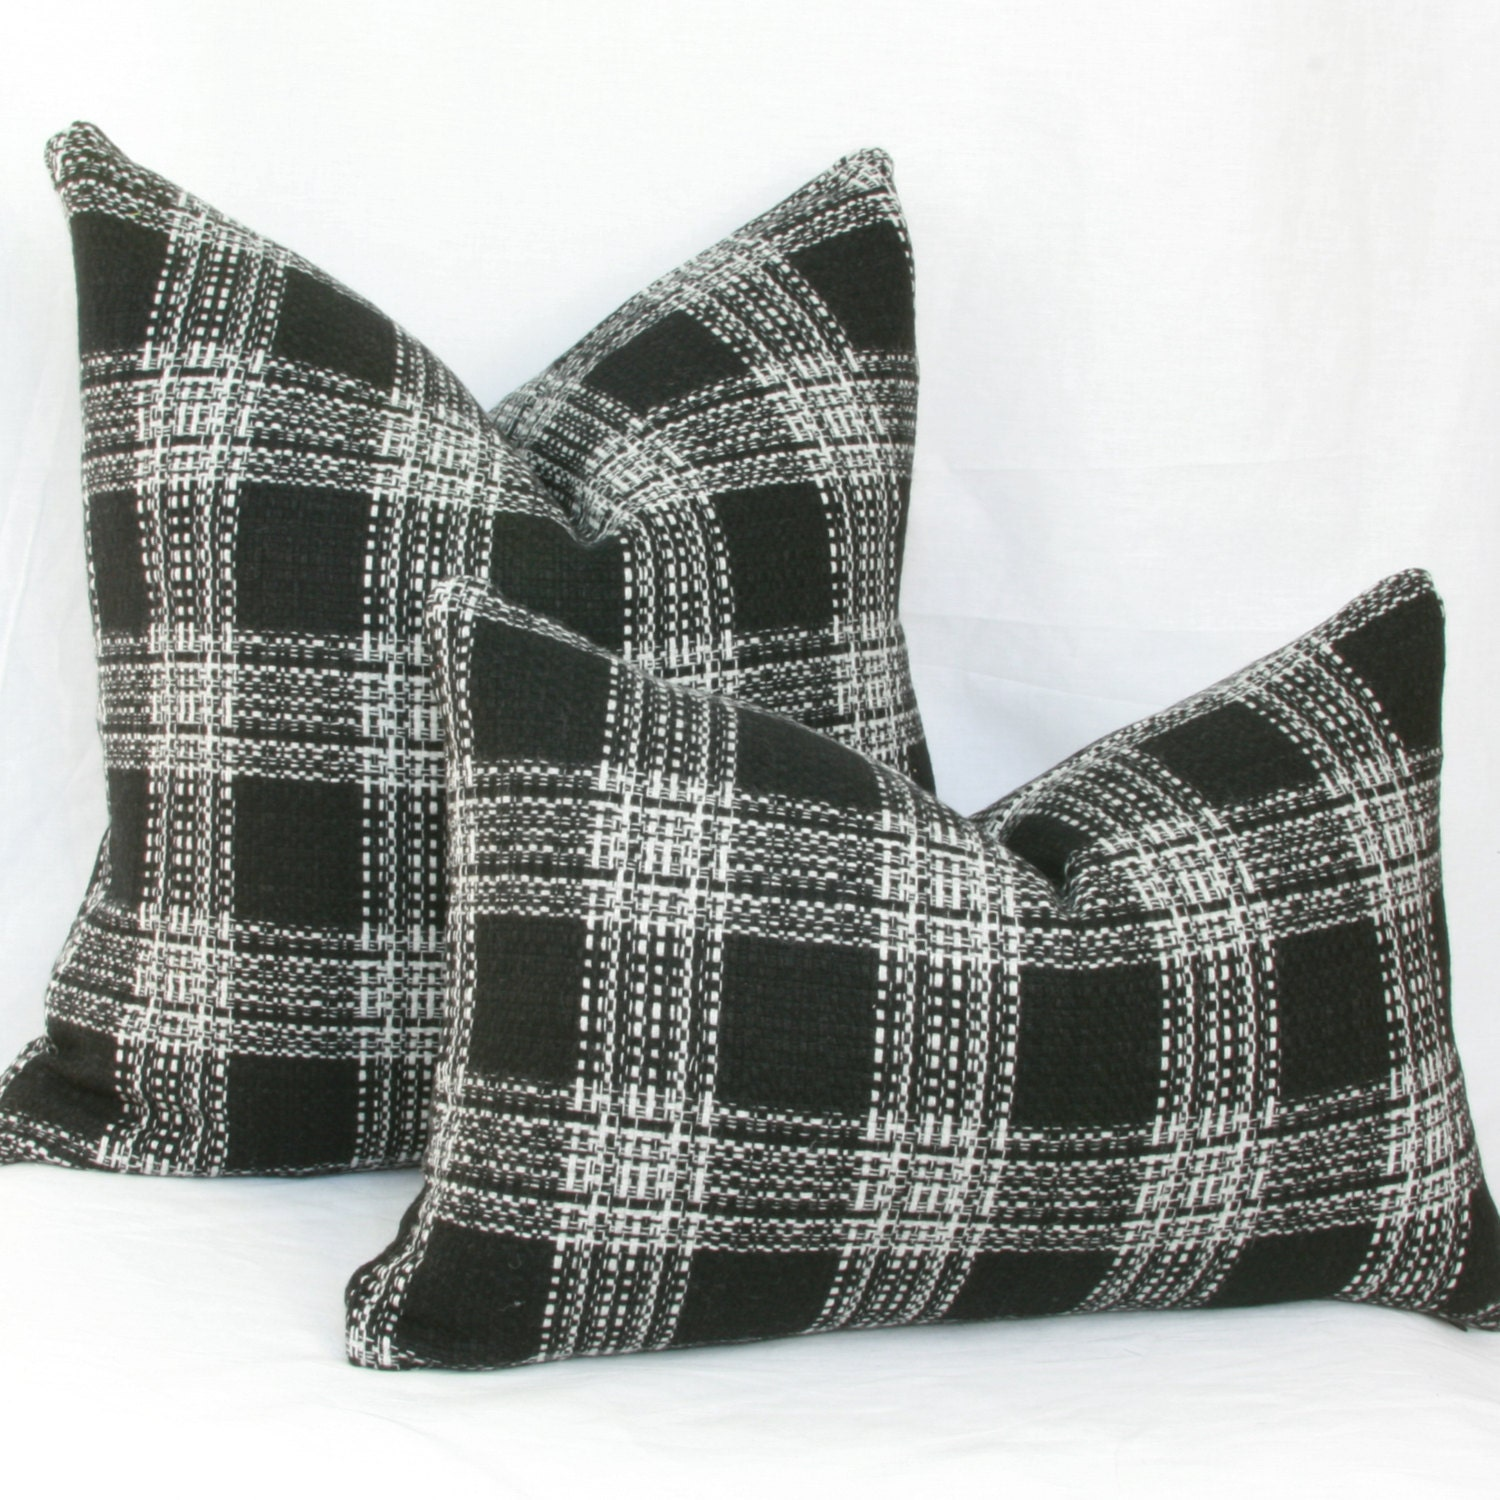 Black Plaid Throw Pillow : Black & white wool plaid decorative throw pillow cover. 18 x